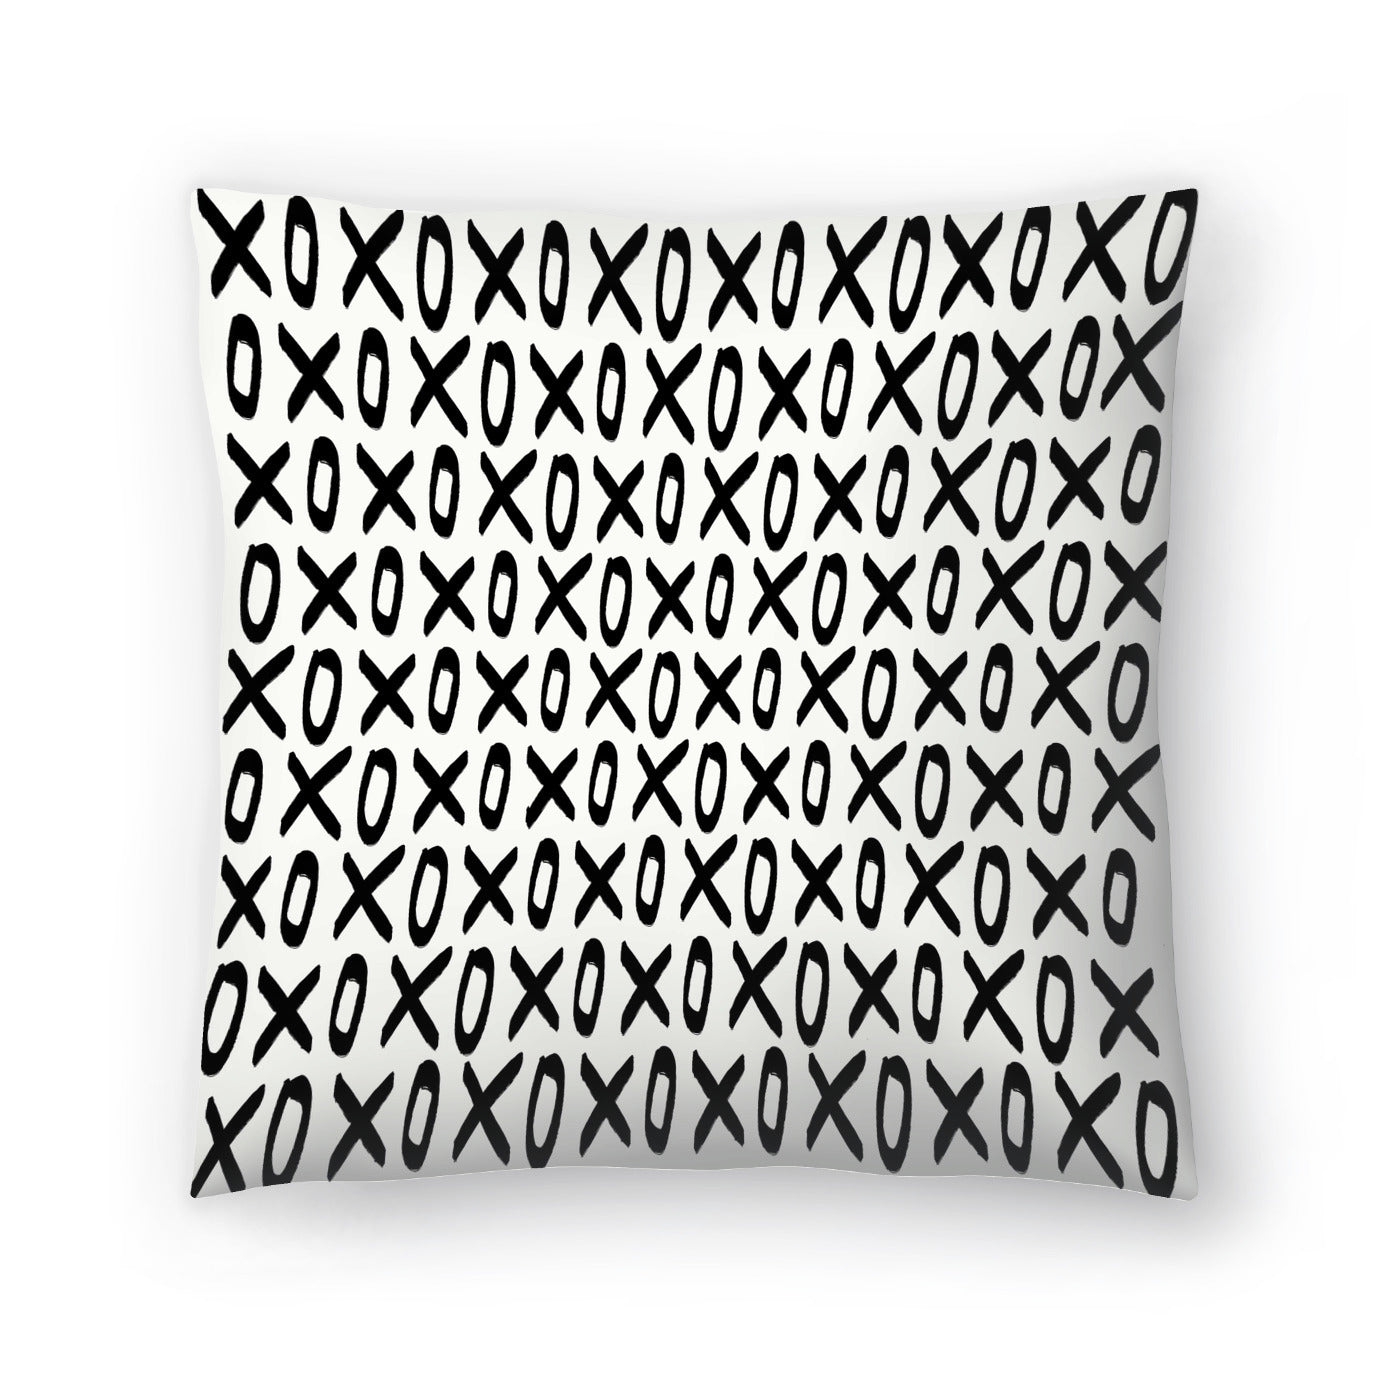 Xoxo by Leah Flores  Decorative Pillow - Decorative Pillow - Americanflat